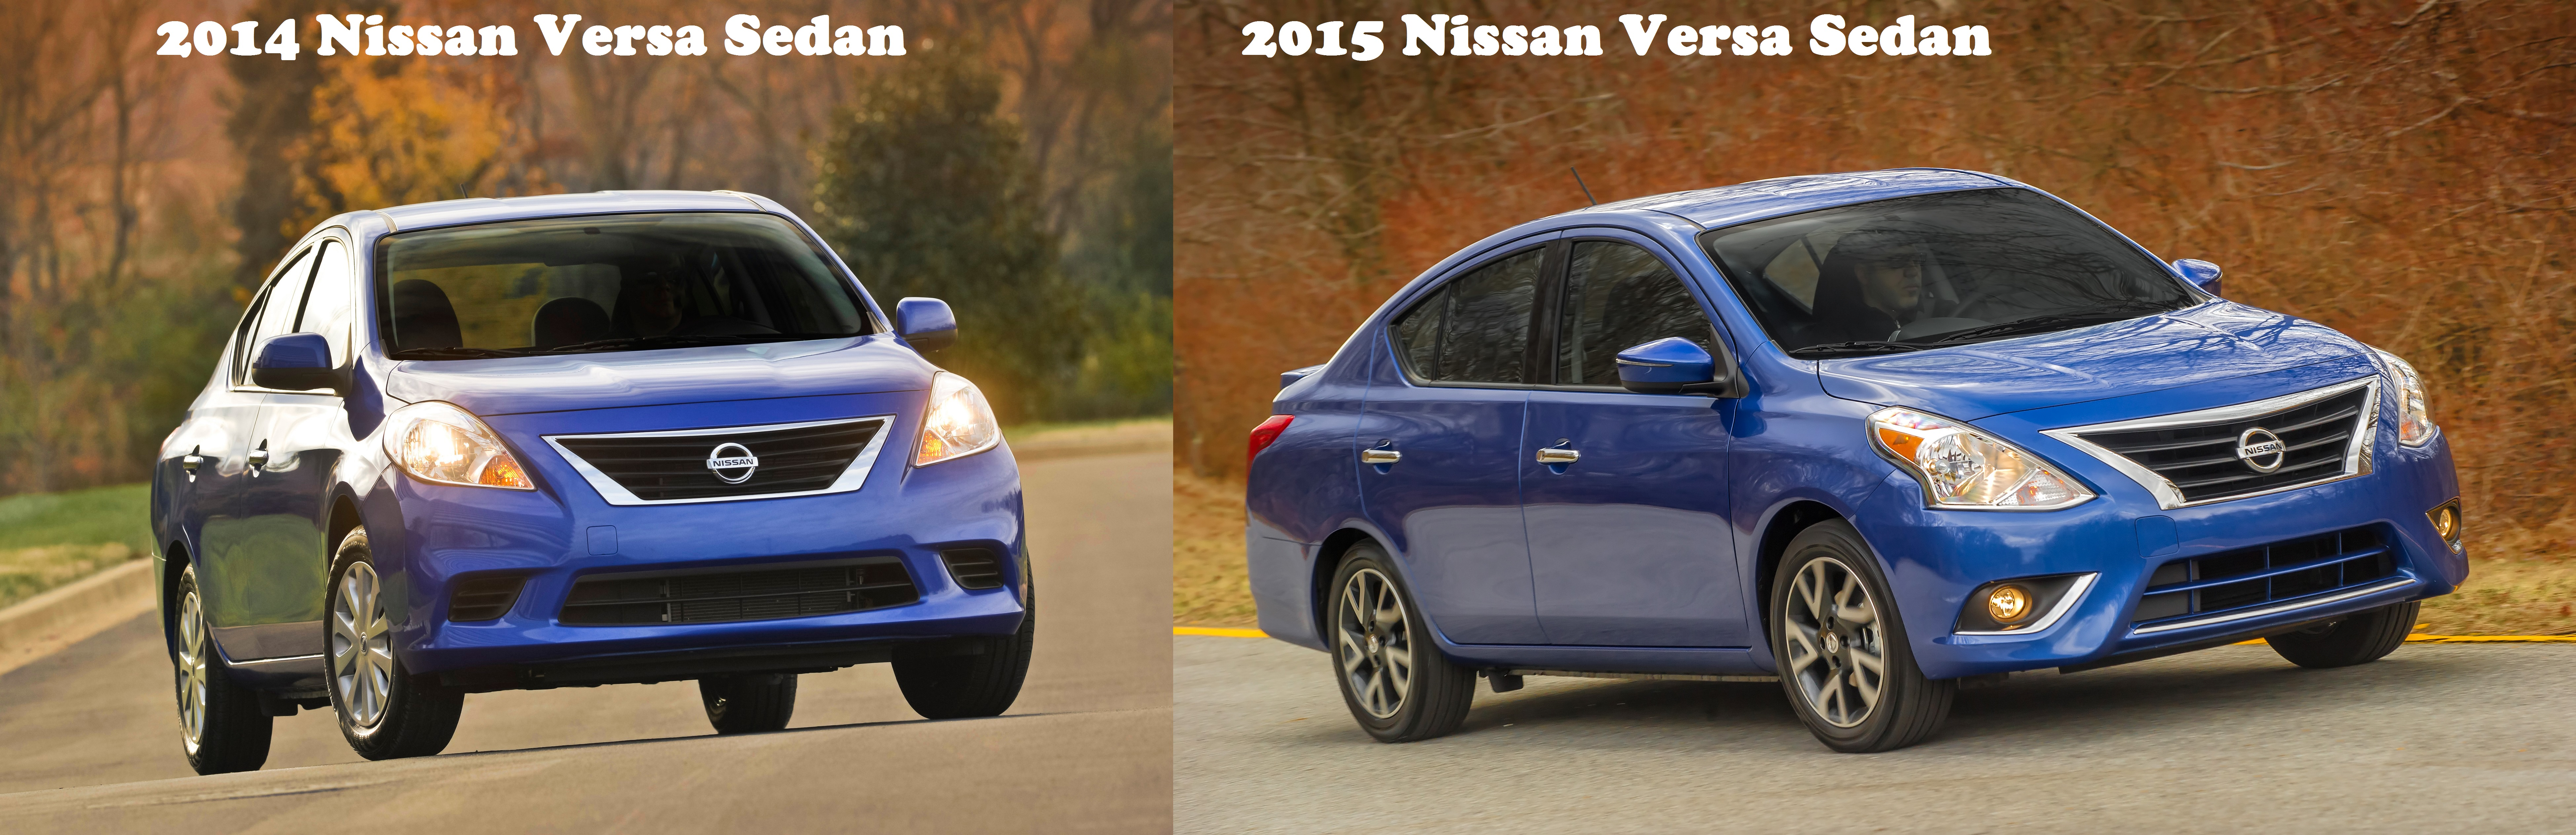 file sv right nissan wikimedia note wiki front side commons versa